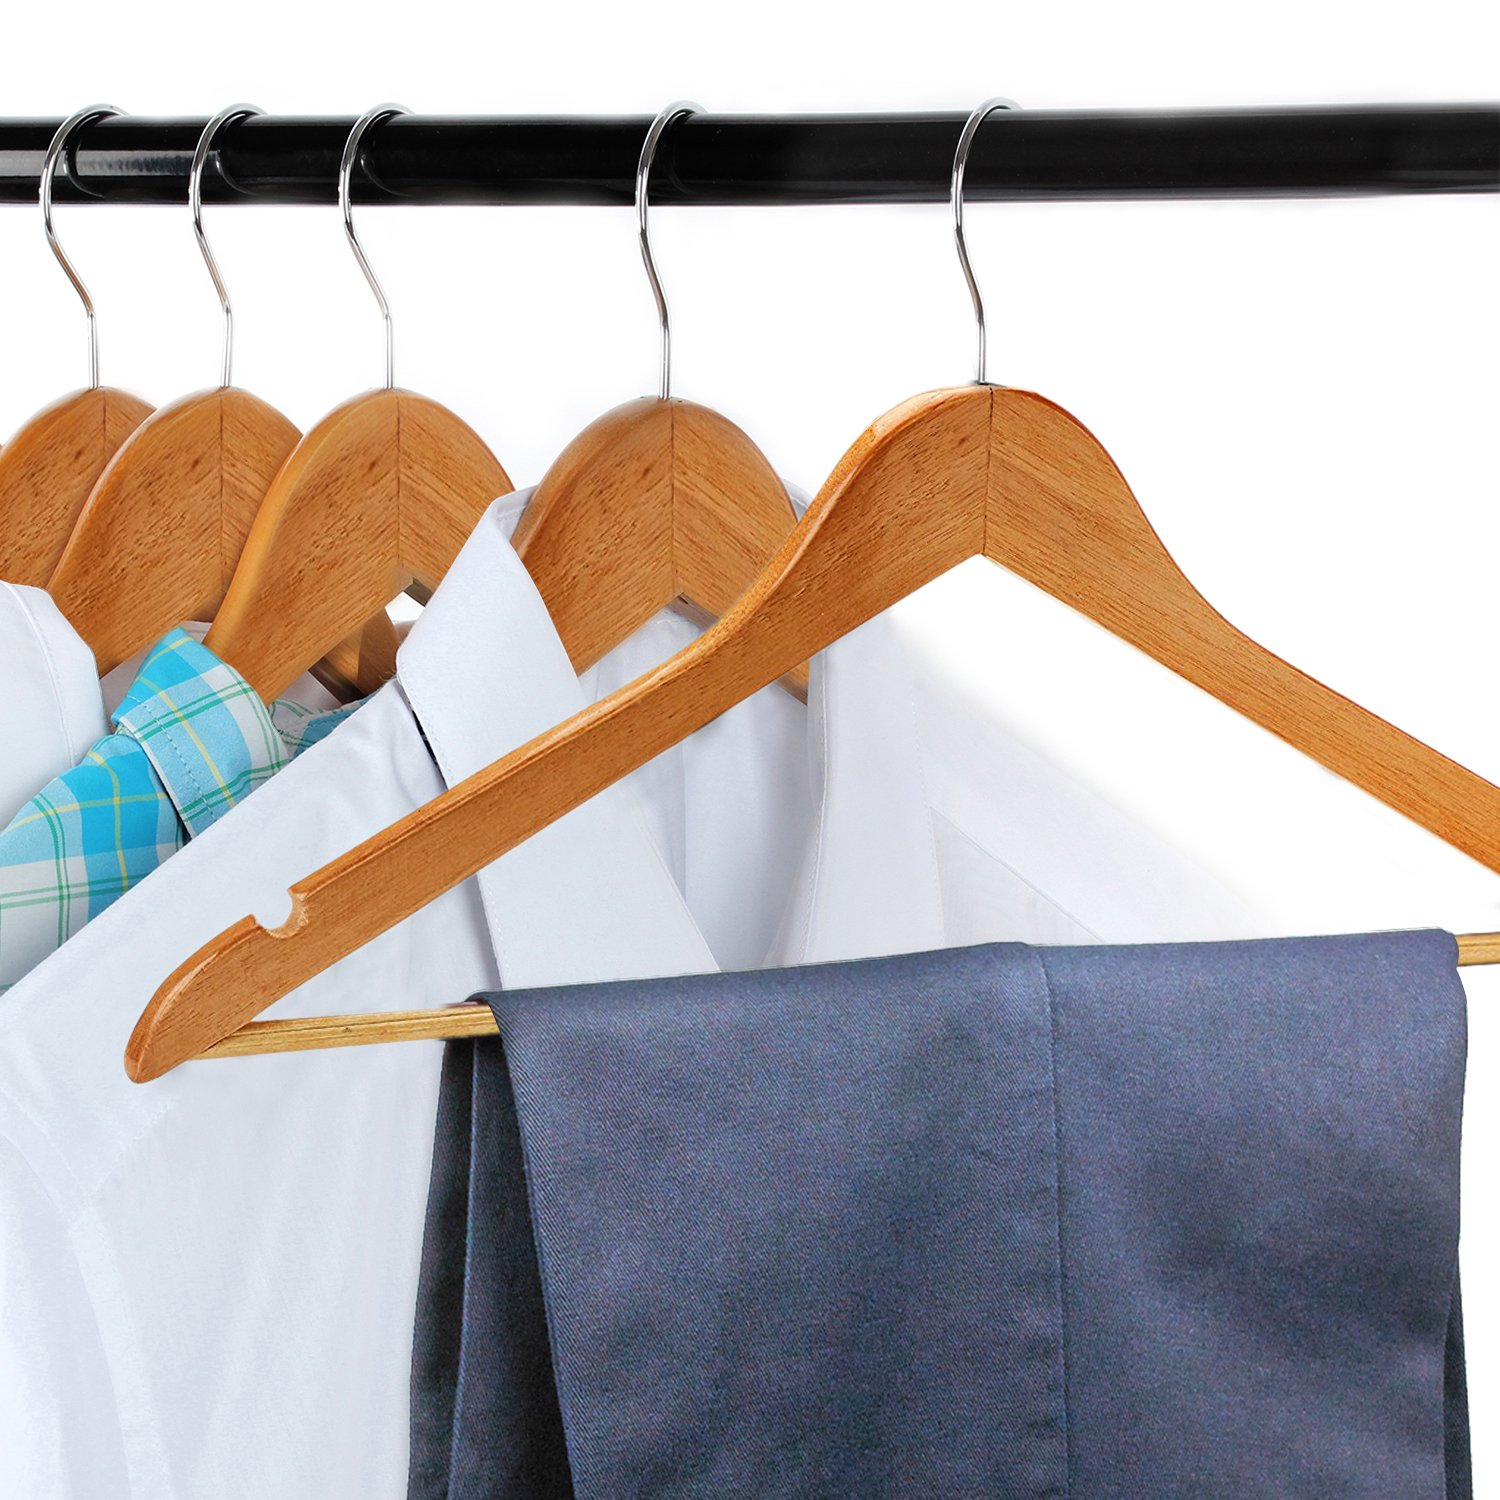 Pack of 24 Natural Wood Suit Clothes Hangers with High Grade Extra Smooth Finish /& Chrome Hook to Organize Your Wardrobe - FloridaBrands Wooden Dress Hangers Hold N Storage FB-FB2184//24